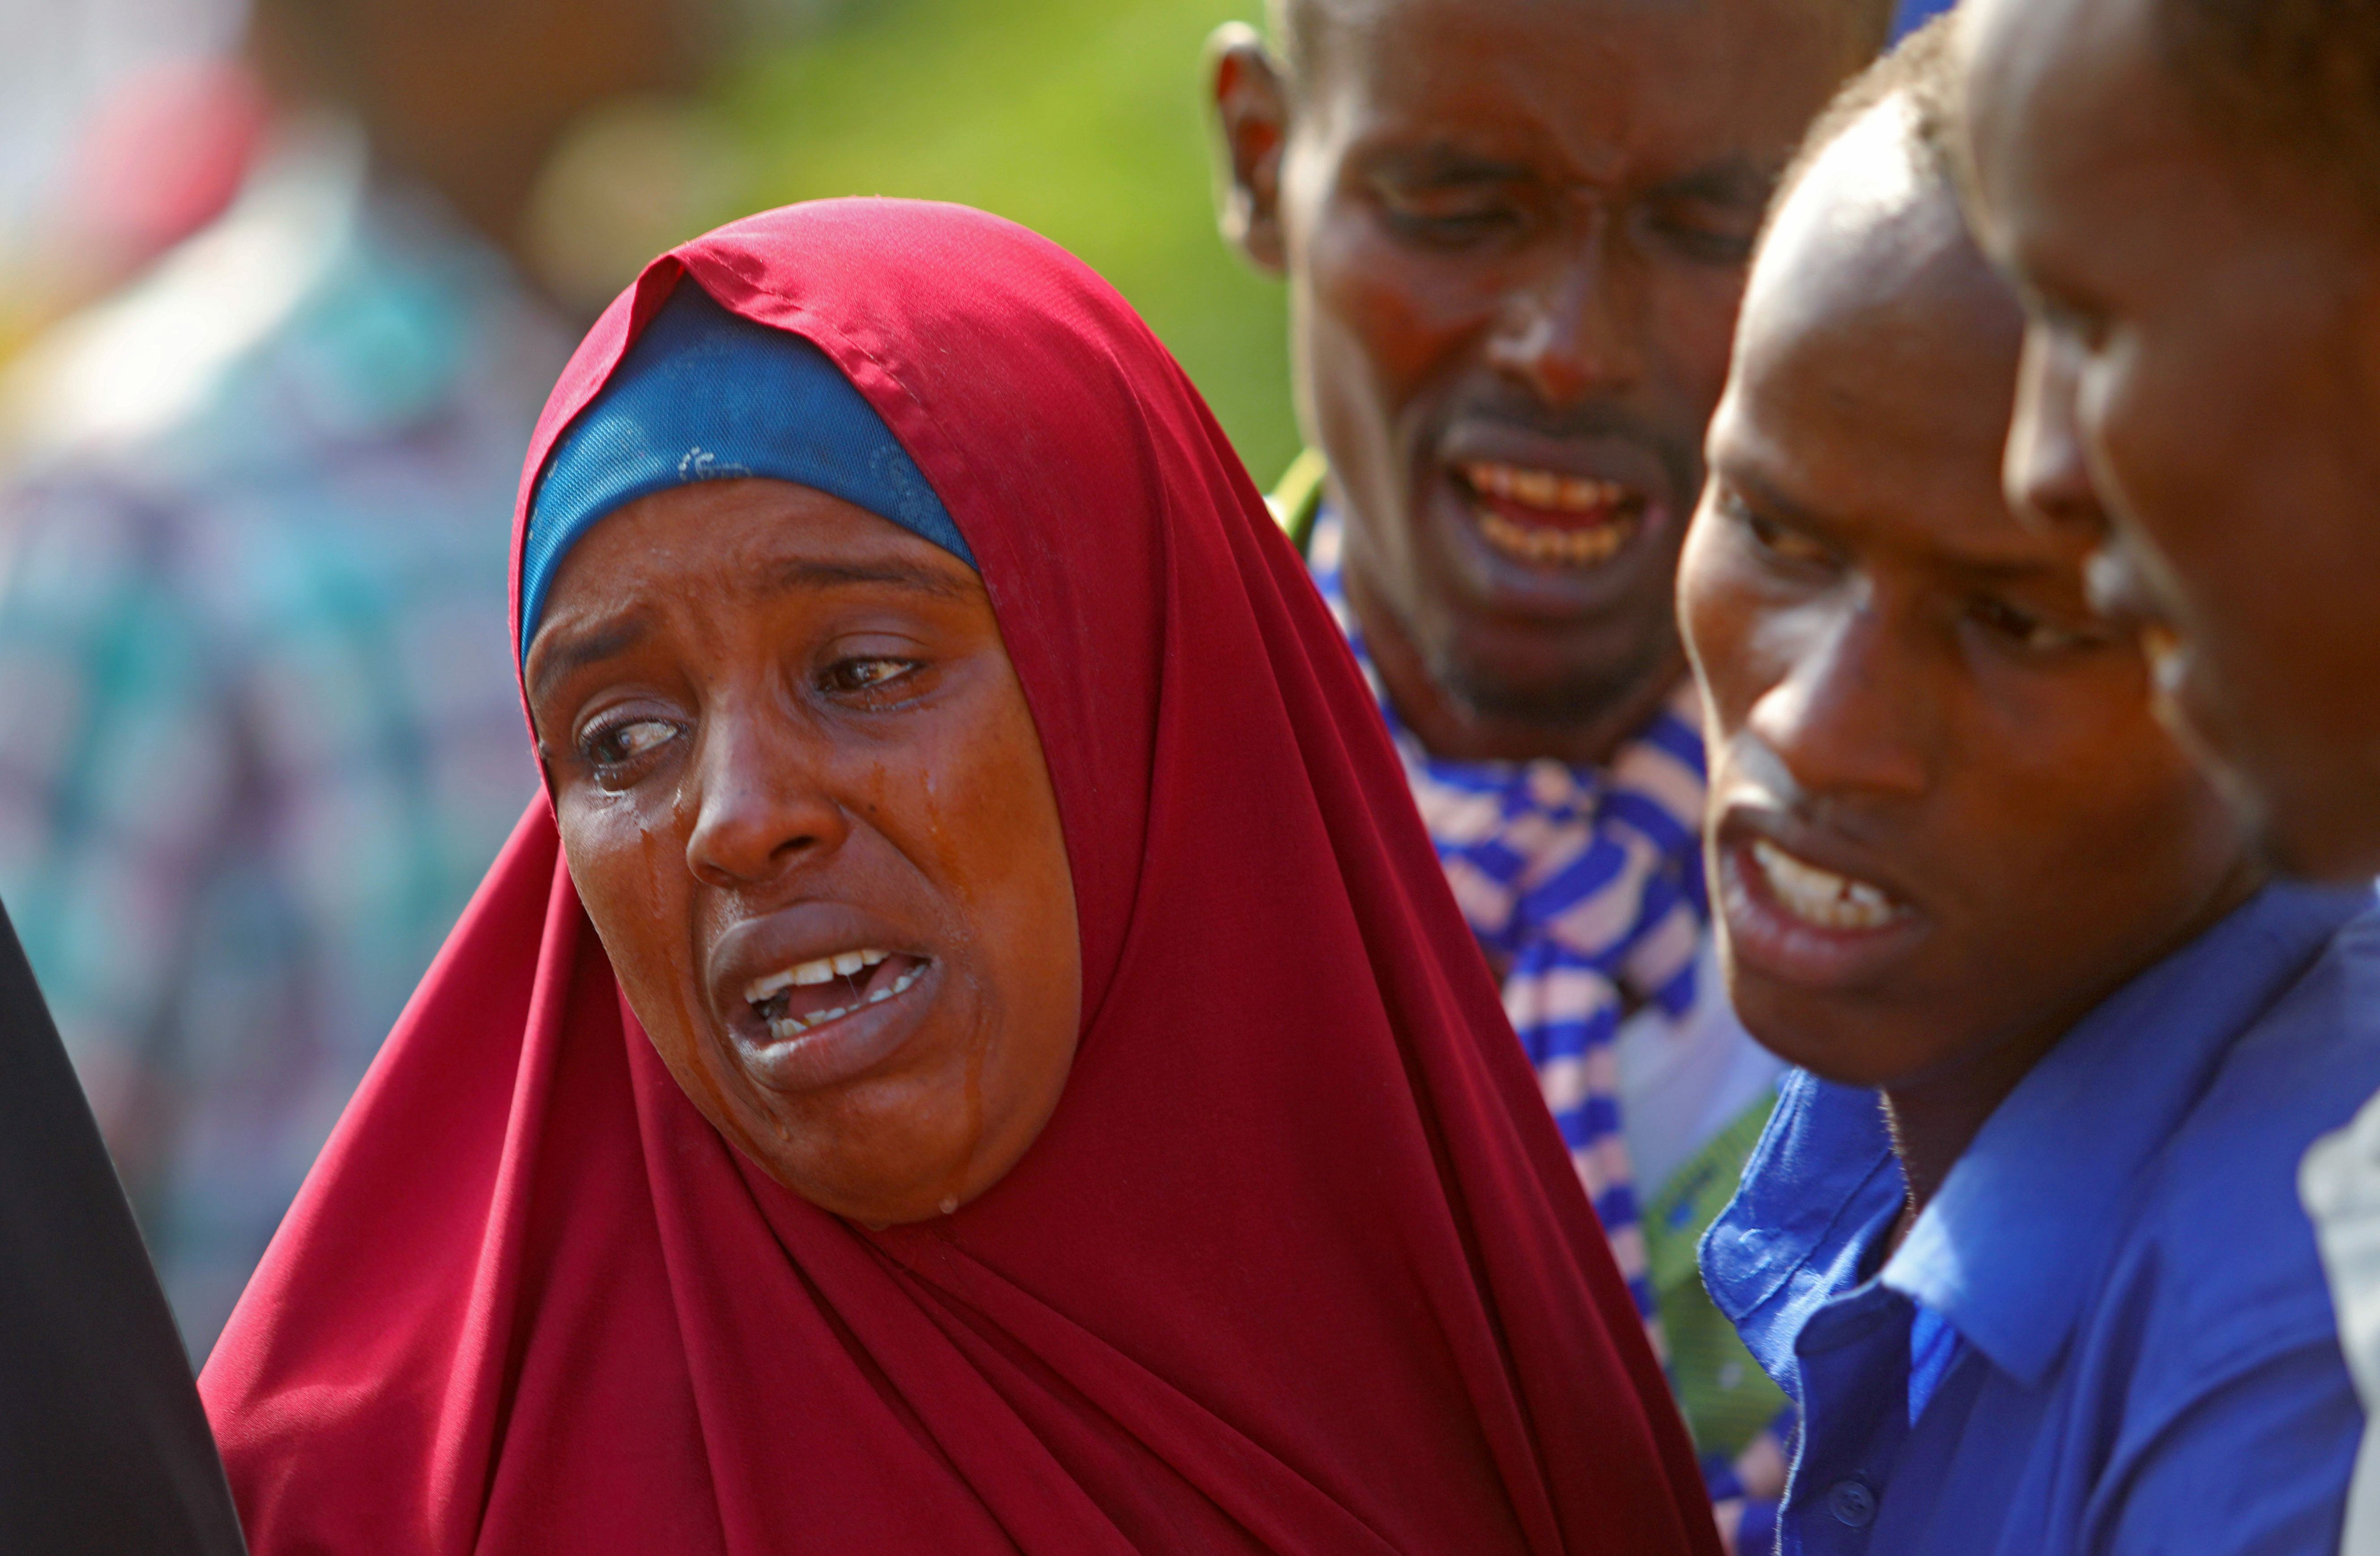 Relatives mourn the killing of their kin in an attack by Somali forces supported by U.S. troops, at the Madina hospital in Mogadishu, Somalia, Aug. 25, 2017.